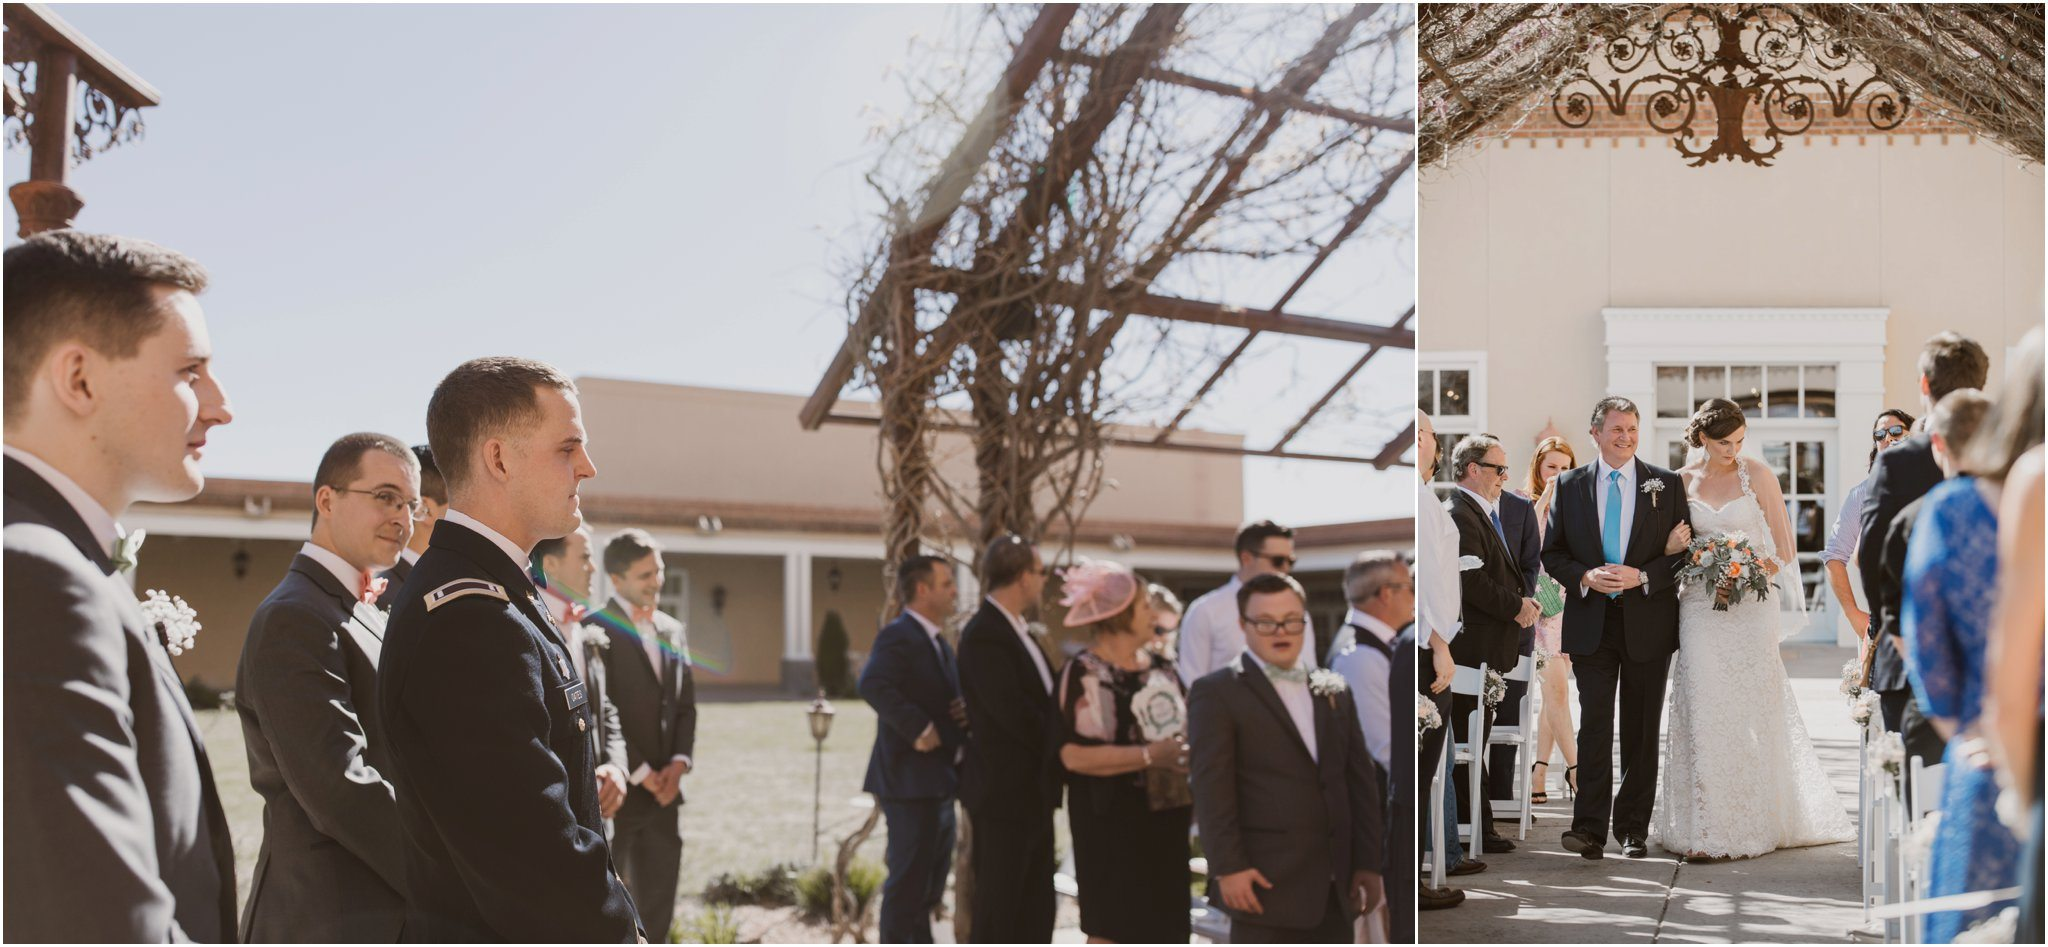 18Blue Rose Photography_ Albuquerque Wedding Photographer_ Santa Fe Wedding Photographers